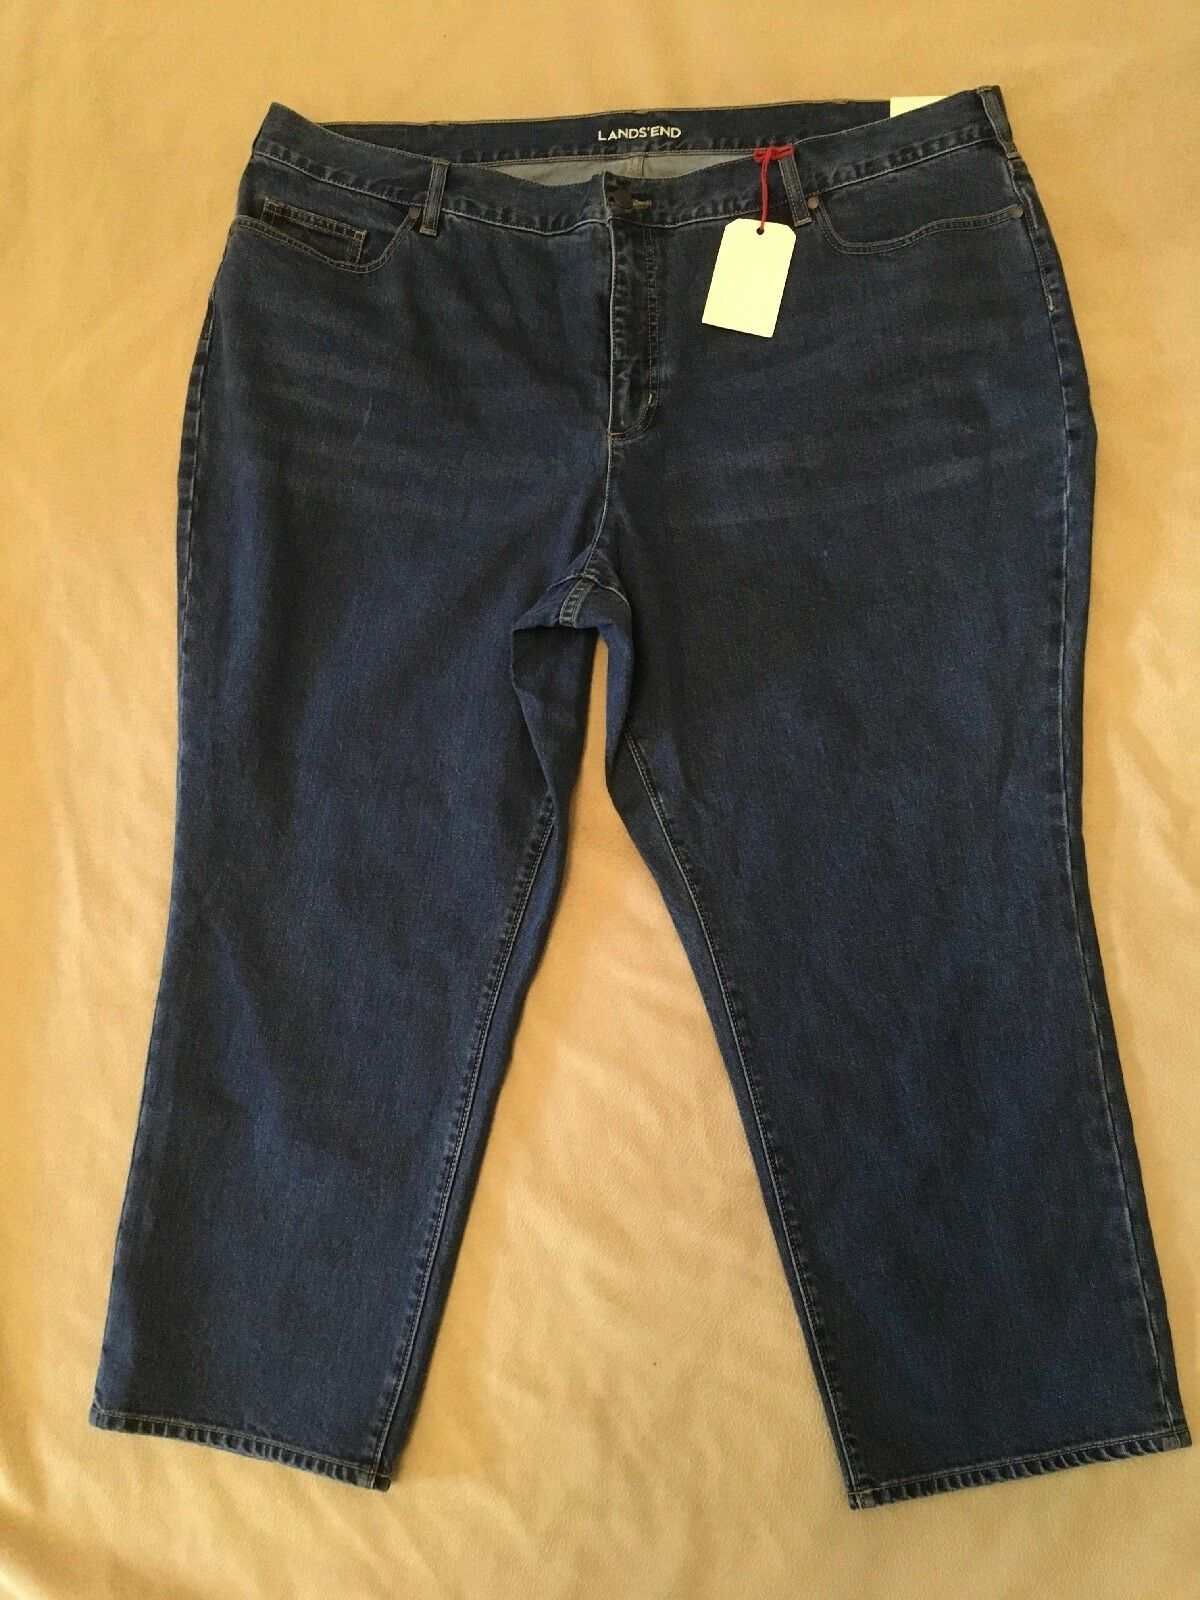 "Lands End Jeans 26W High Rise Straight Leg Nwt 27.5"" Inseam"